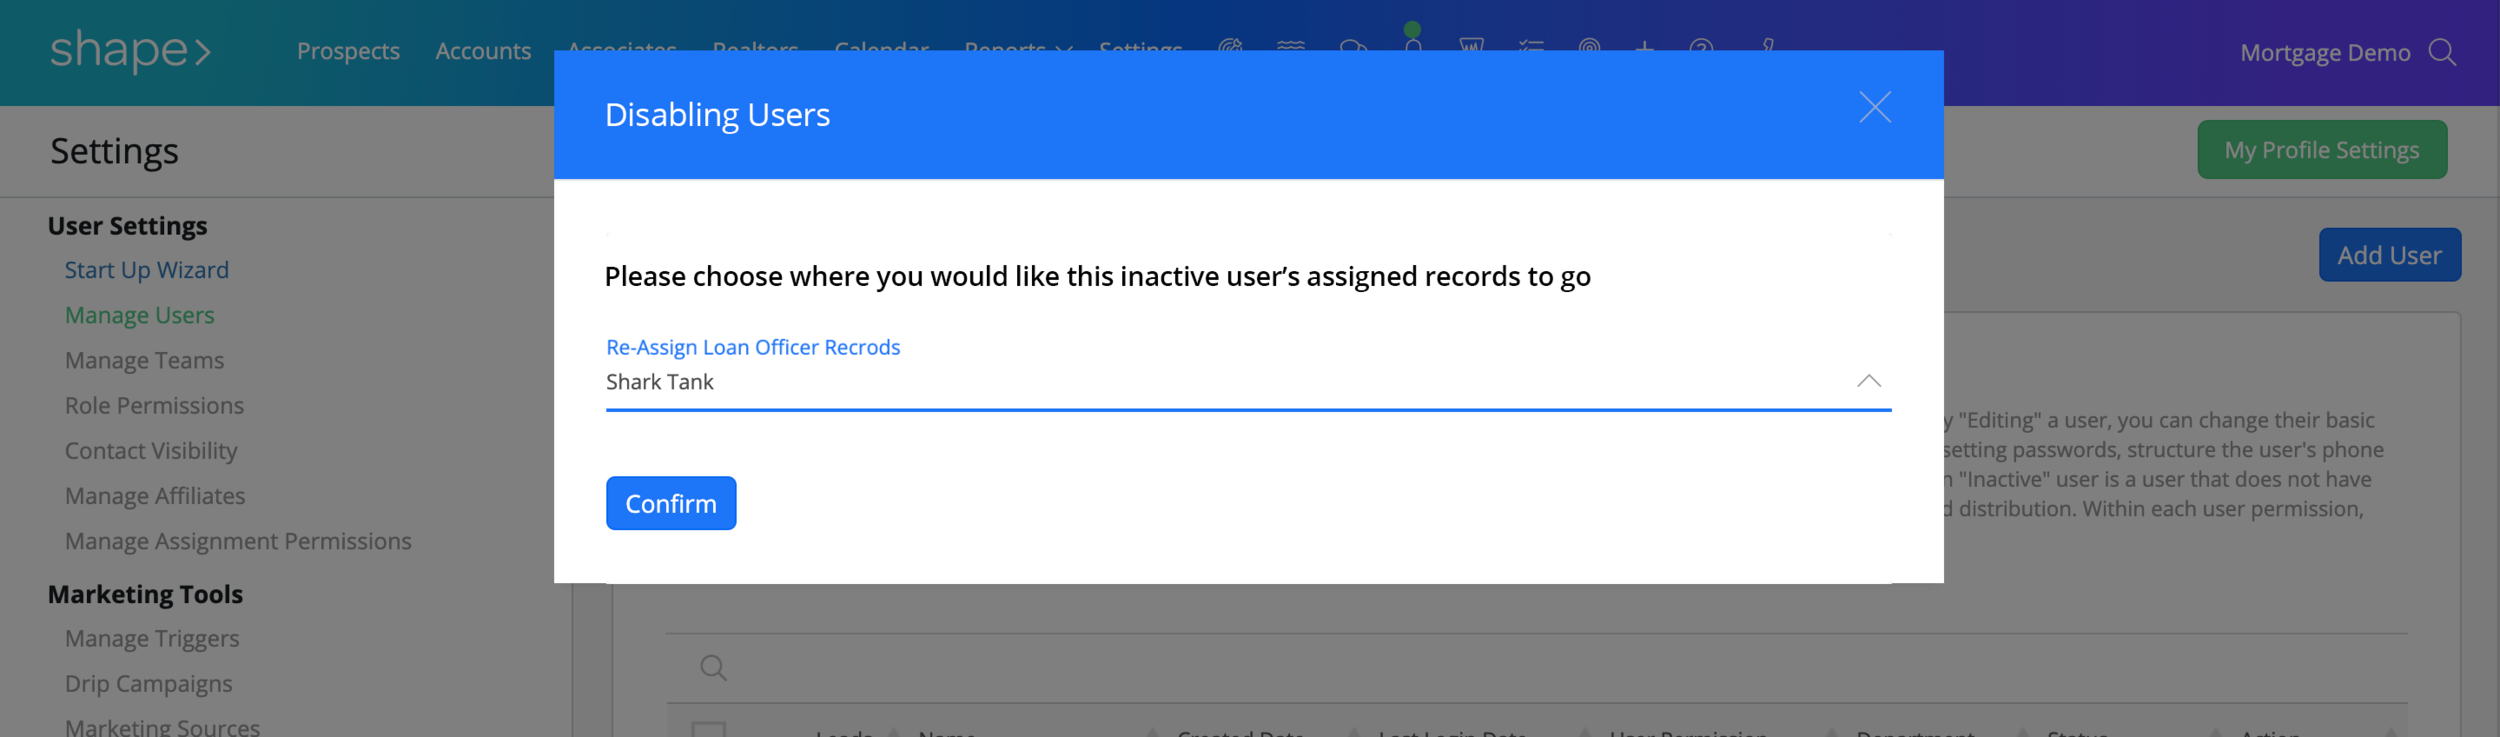 Re-Assigning Records:  When you delete or disable a user, you will then have the ability to decide where to re-assign the disabled user's orphaned events, tasks, users, records etc.